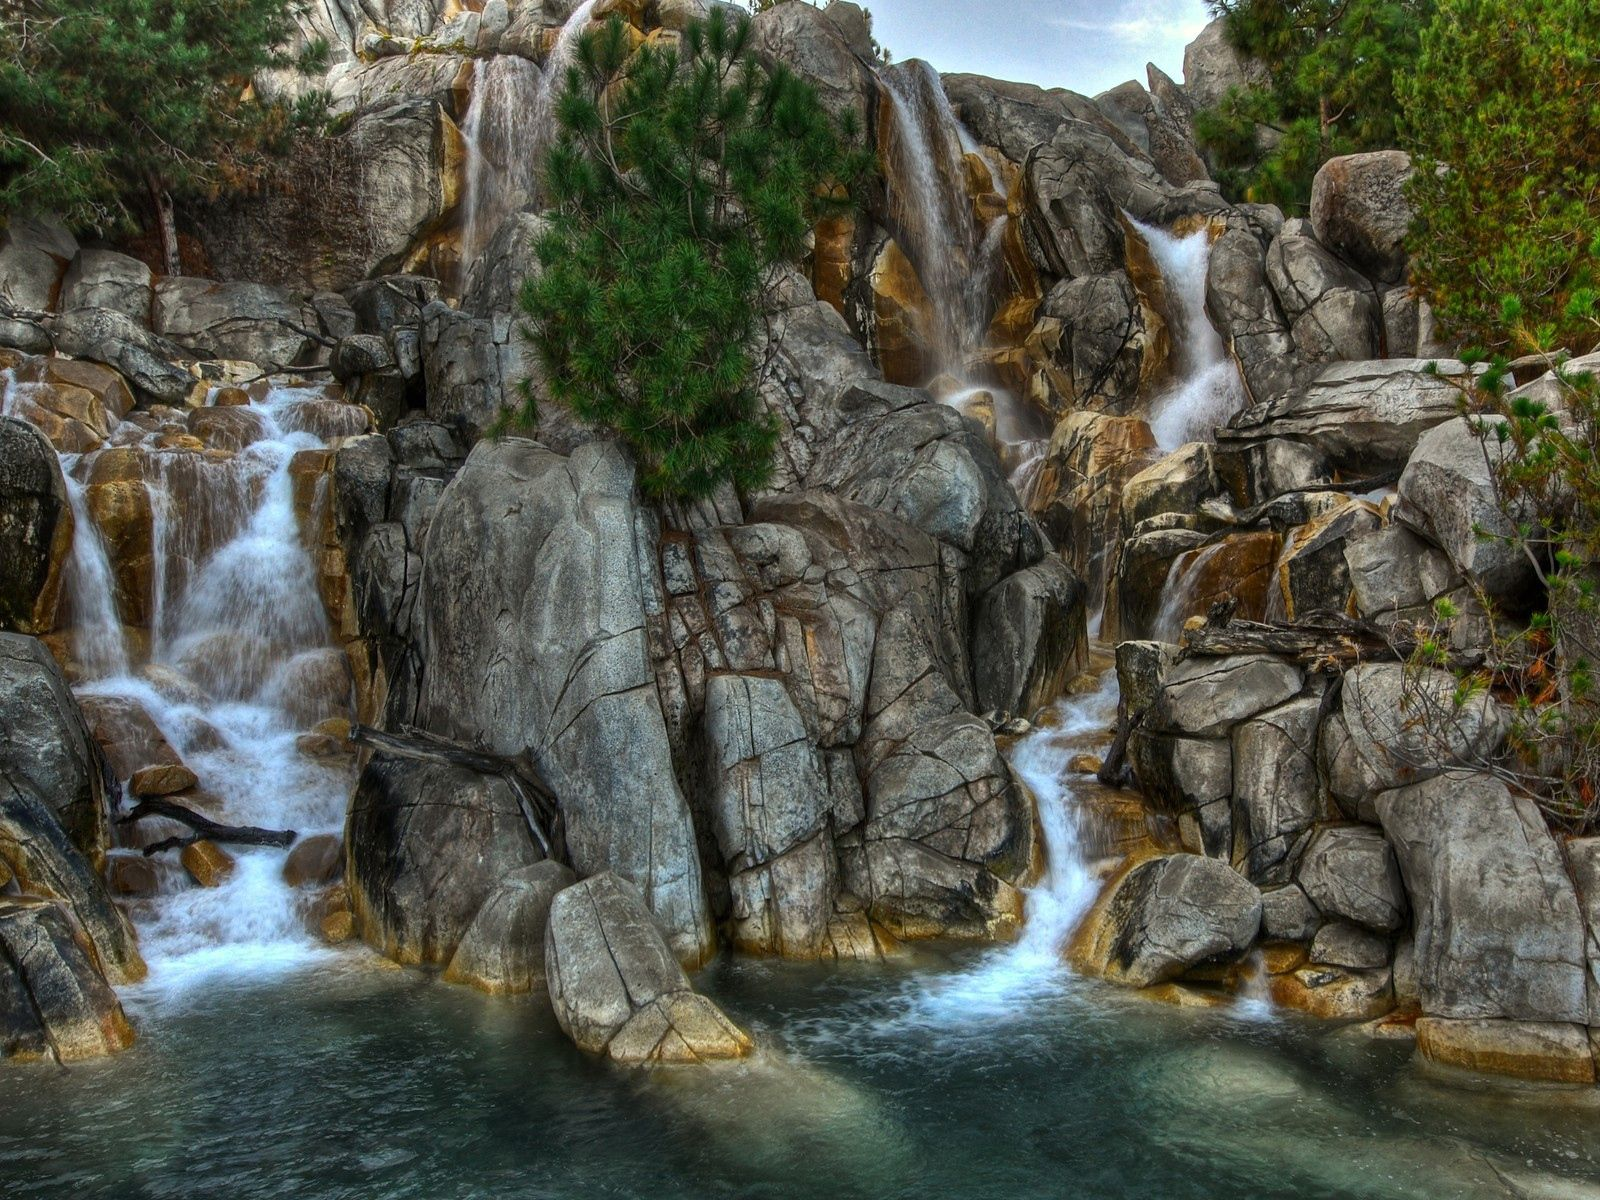 60281 download wallpaper Nature, Stones, Waterfalls, Vegetation, Greens screensavers and pictures for free